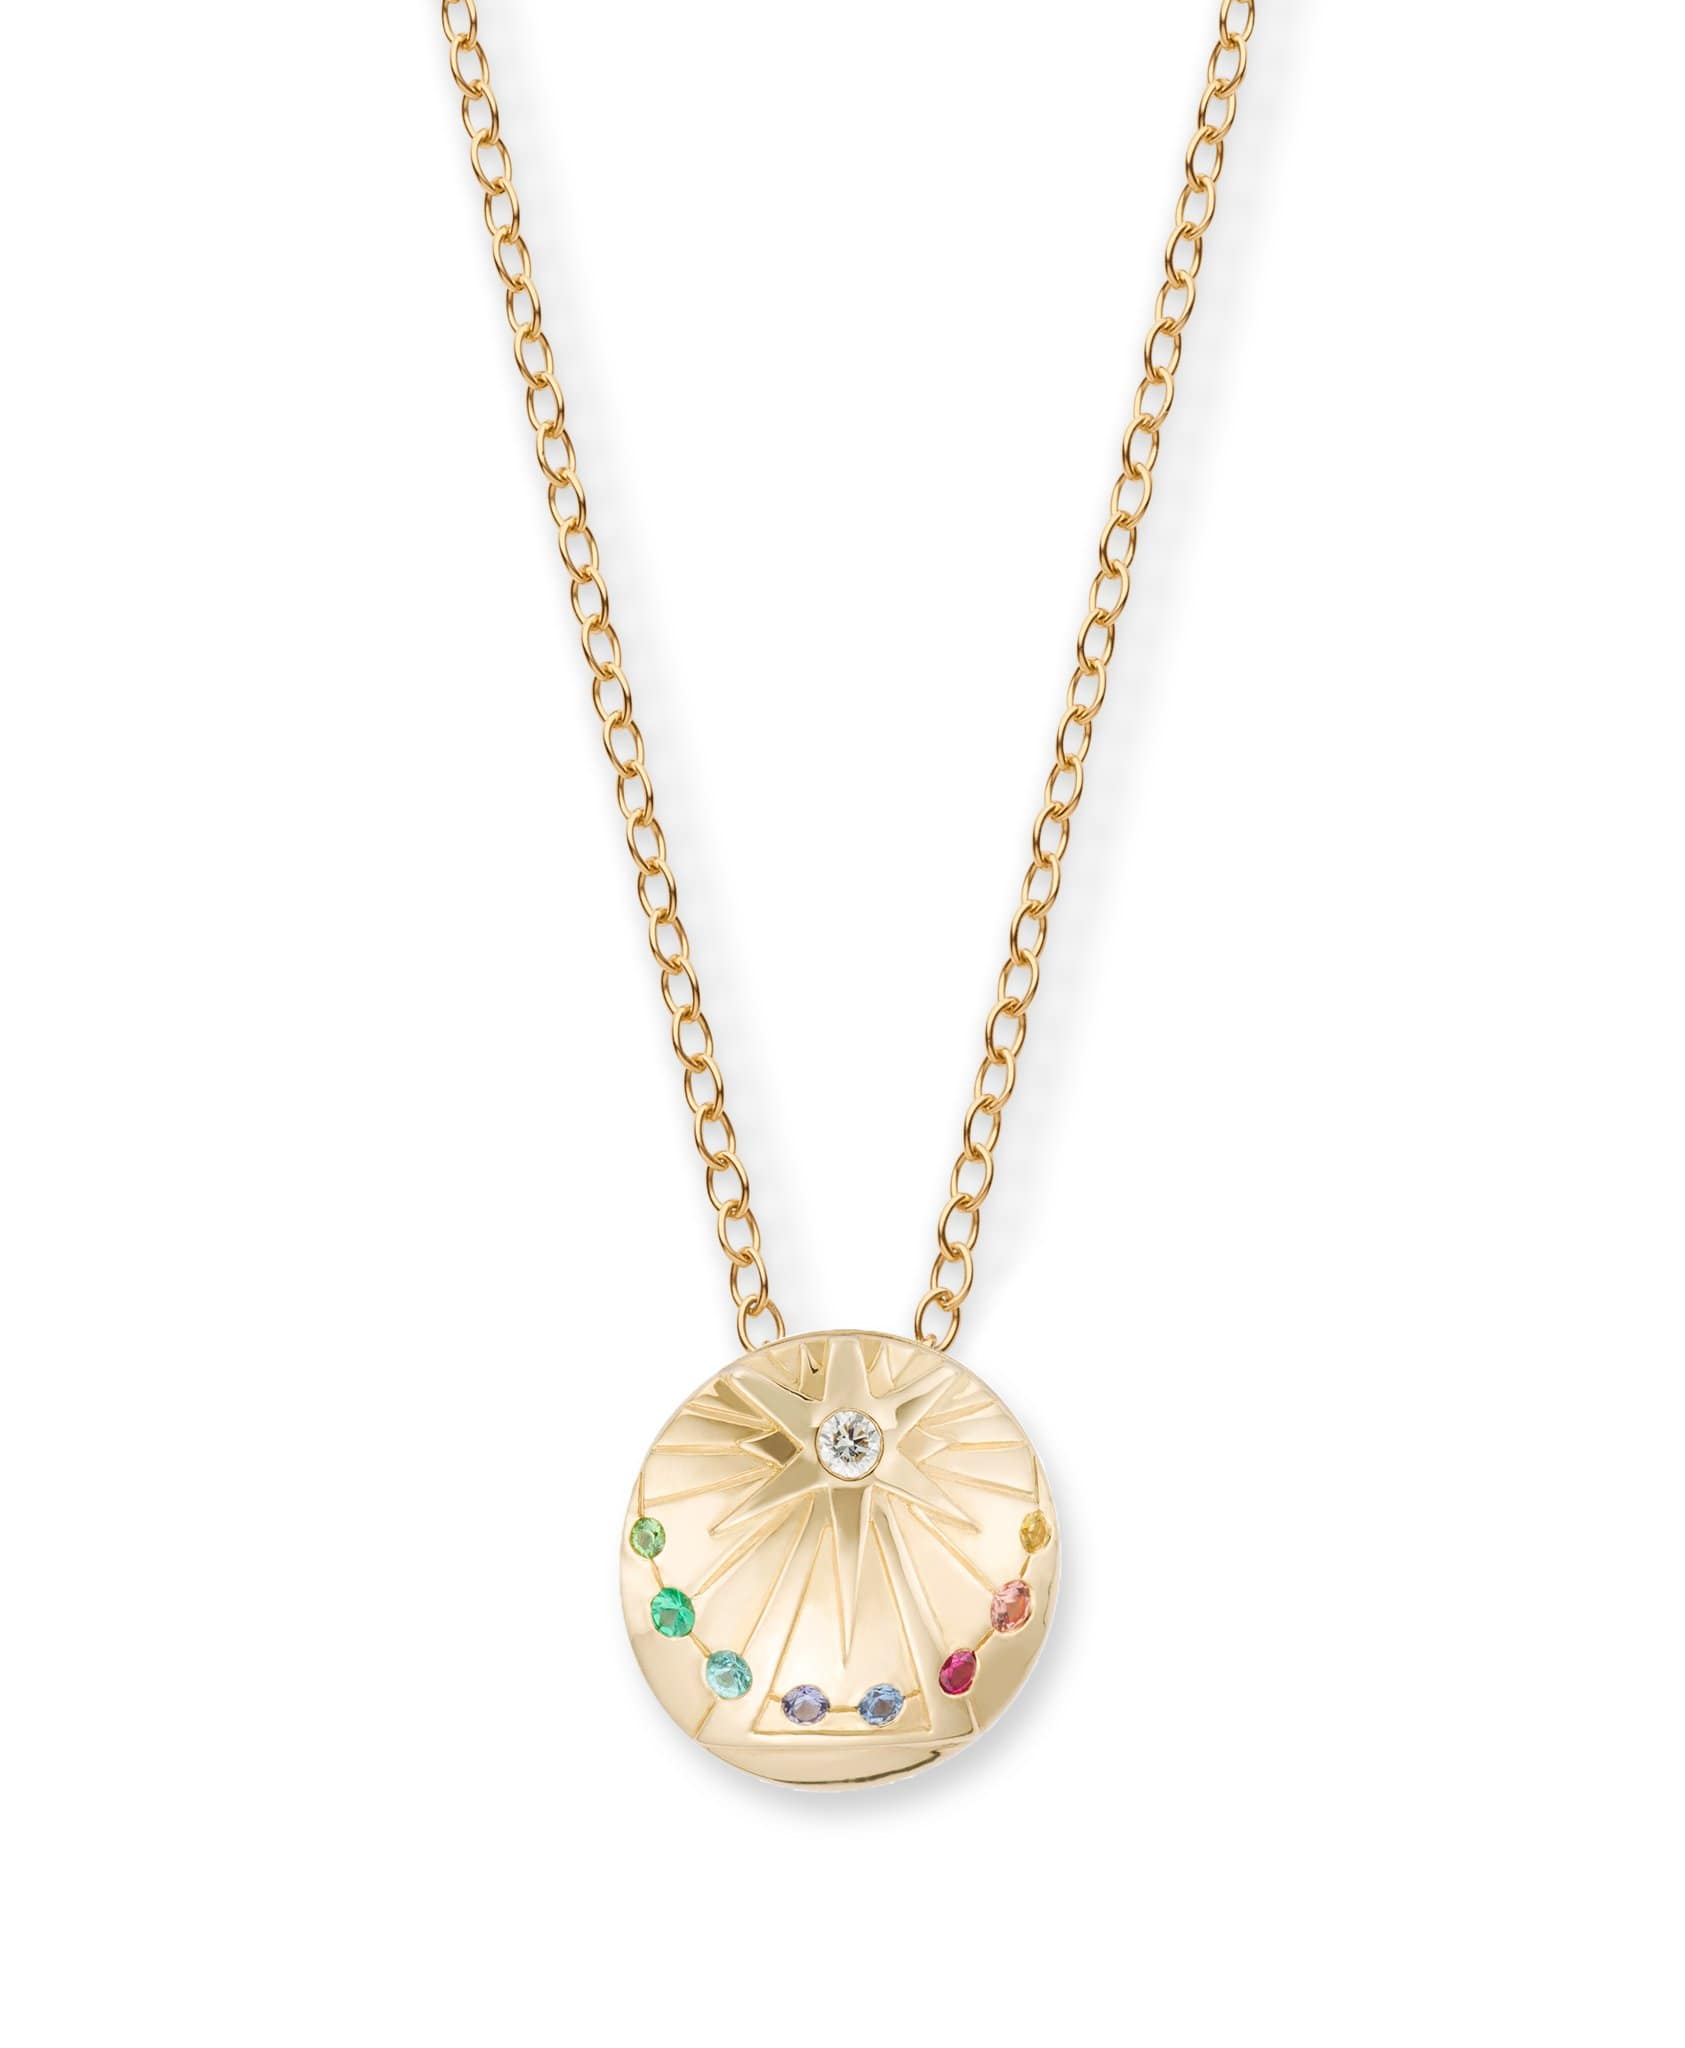 Santa Monica Medallion: Discover Luxury Fine Jewelry | Nouvel Heritage